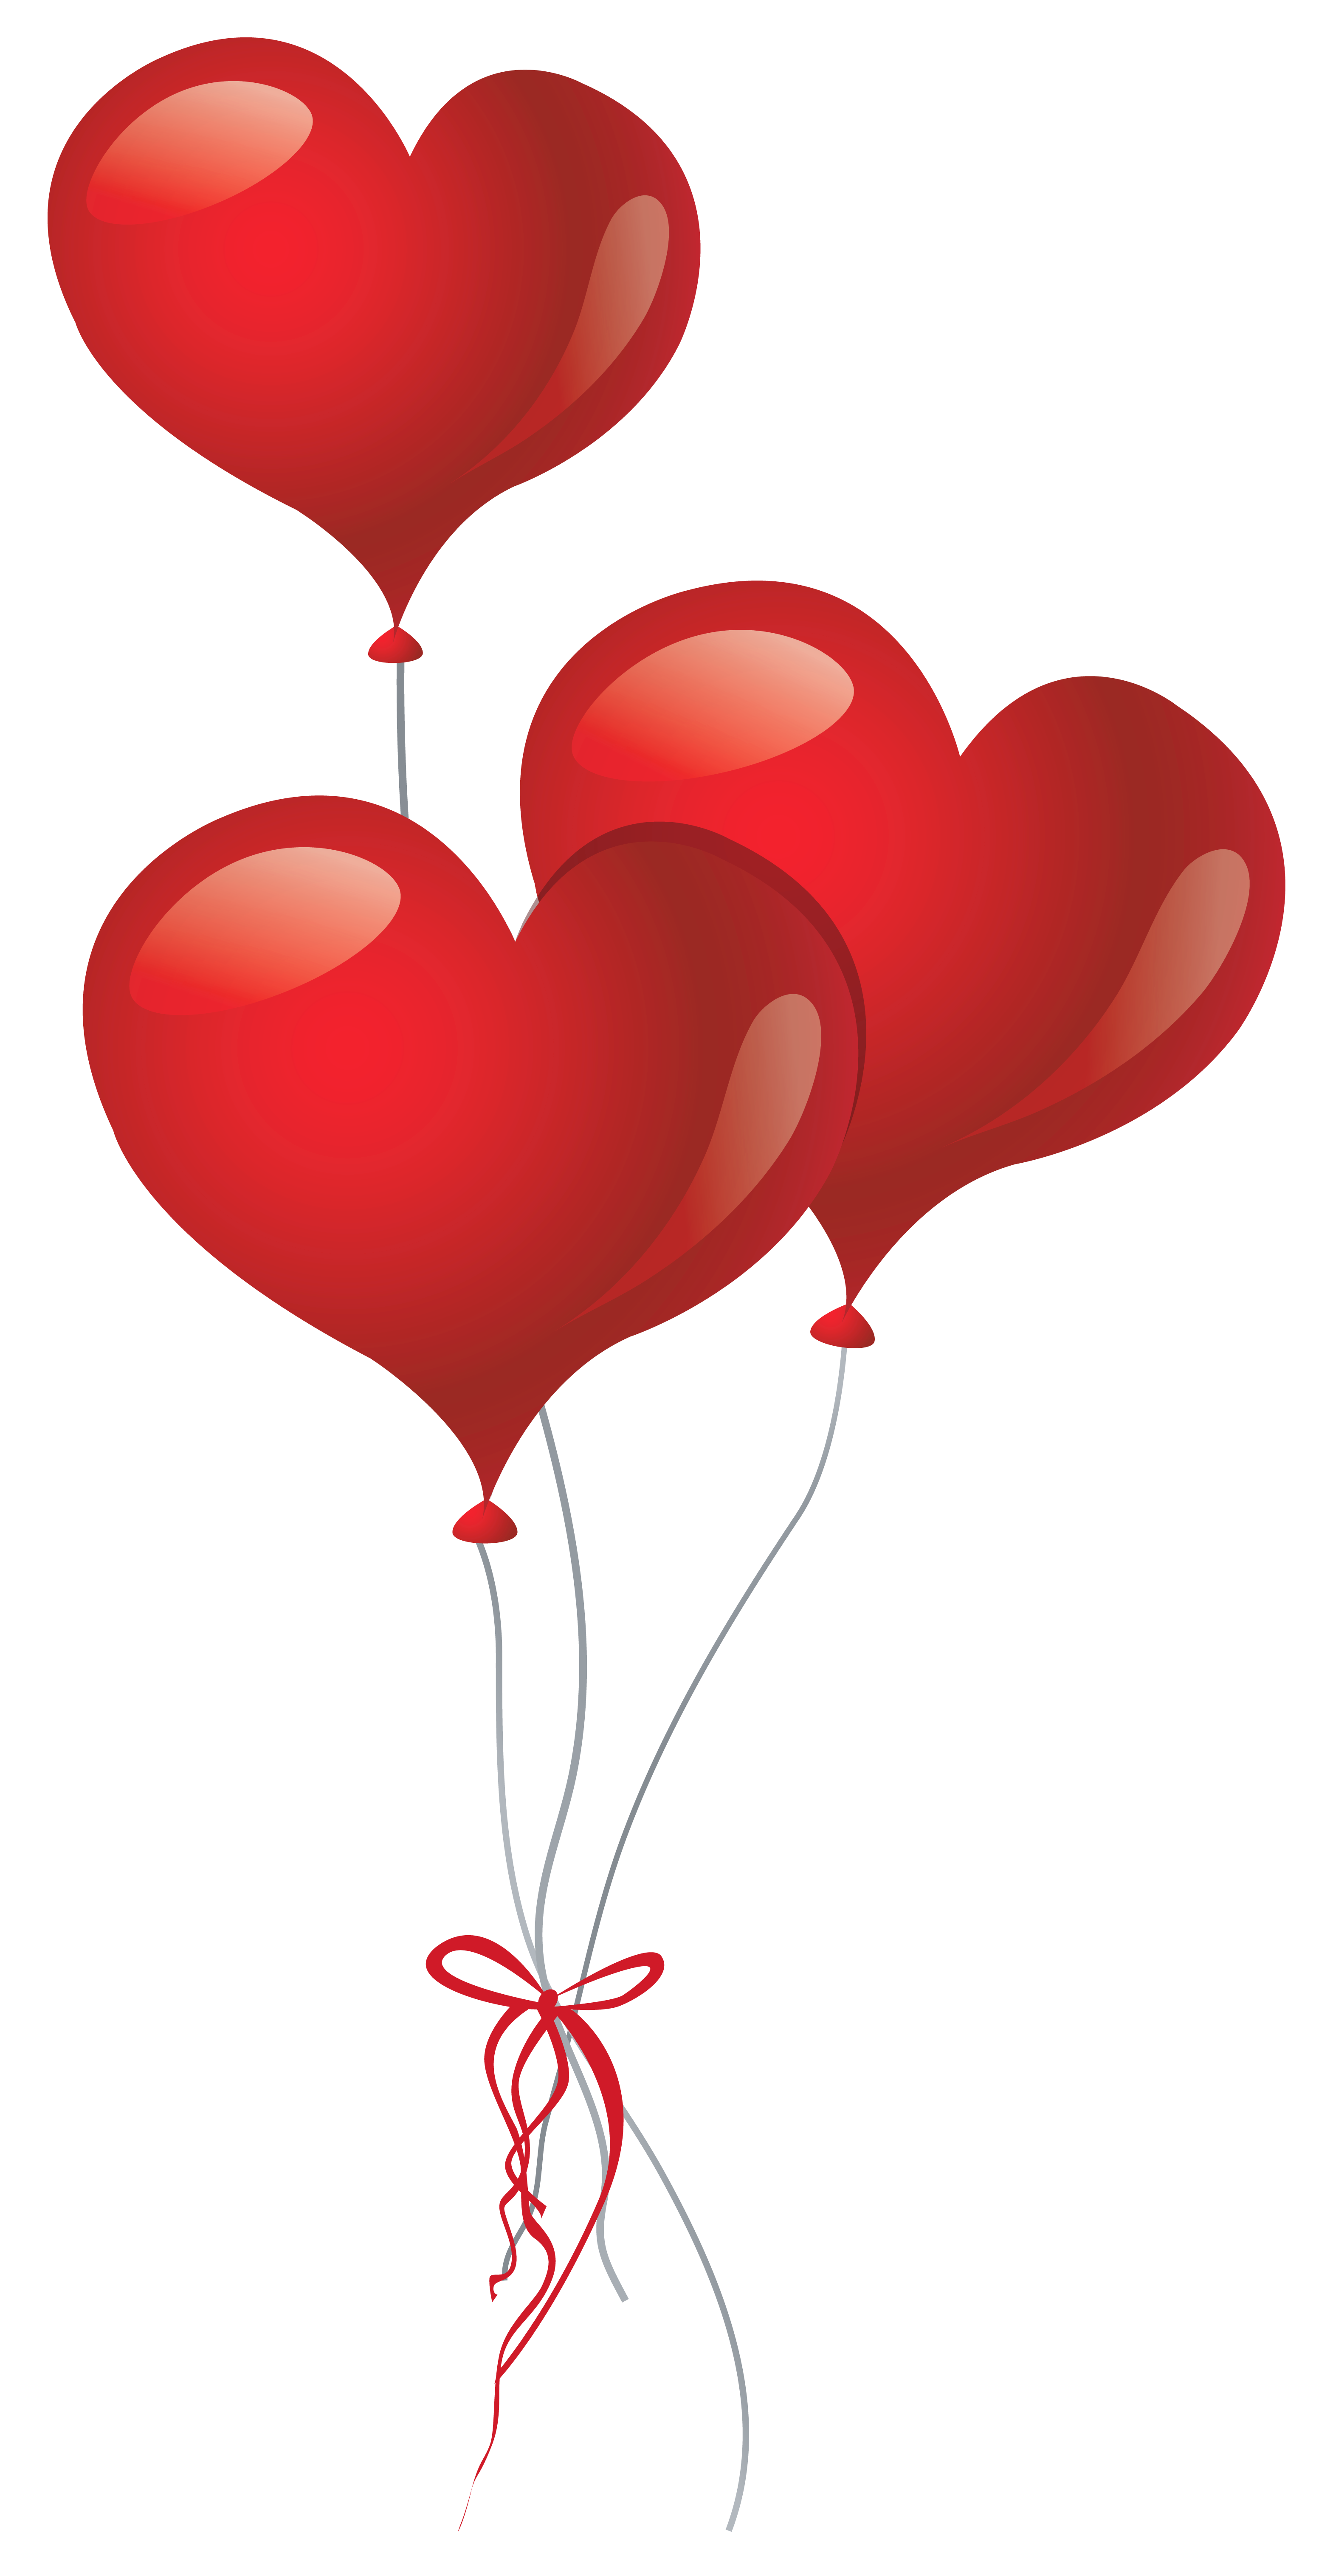 Heart png picture gallery. Balloons clipart valentines